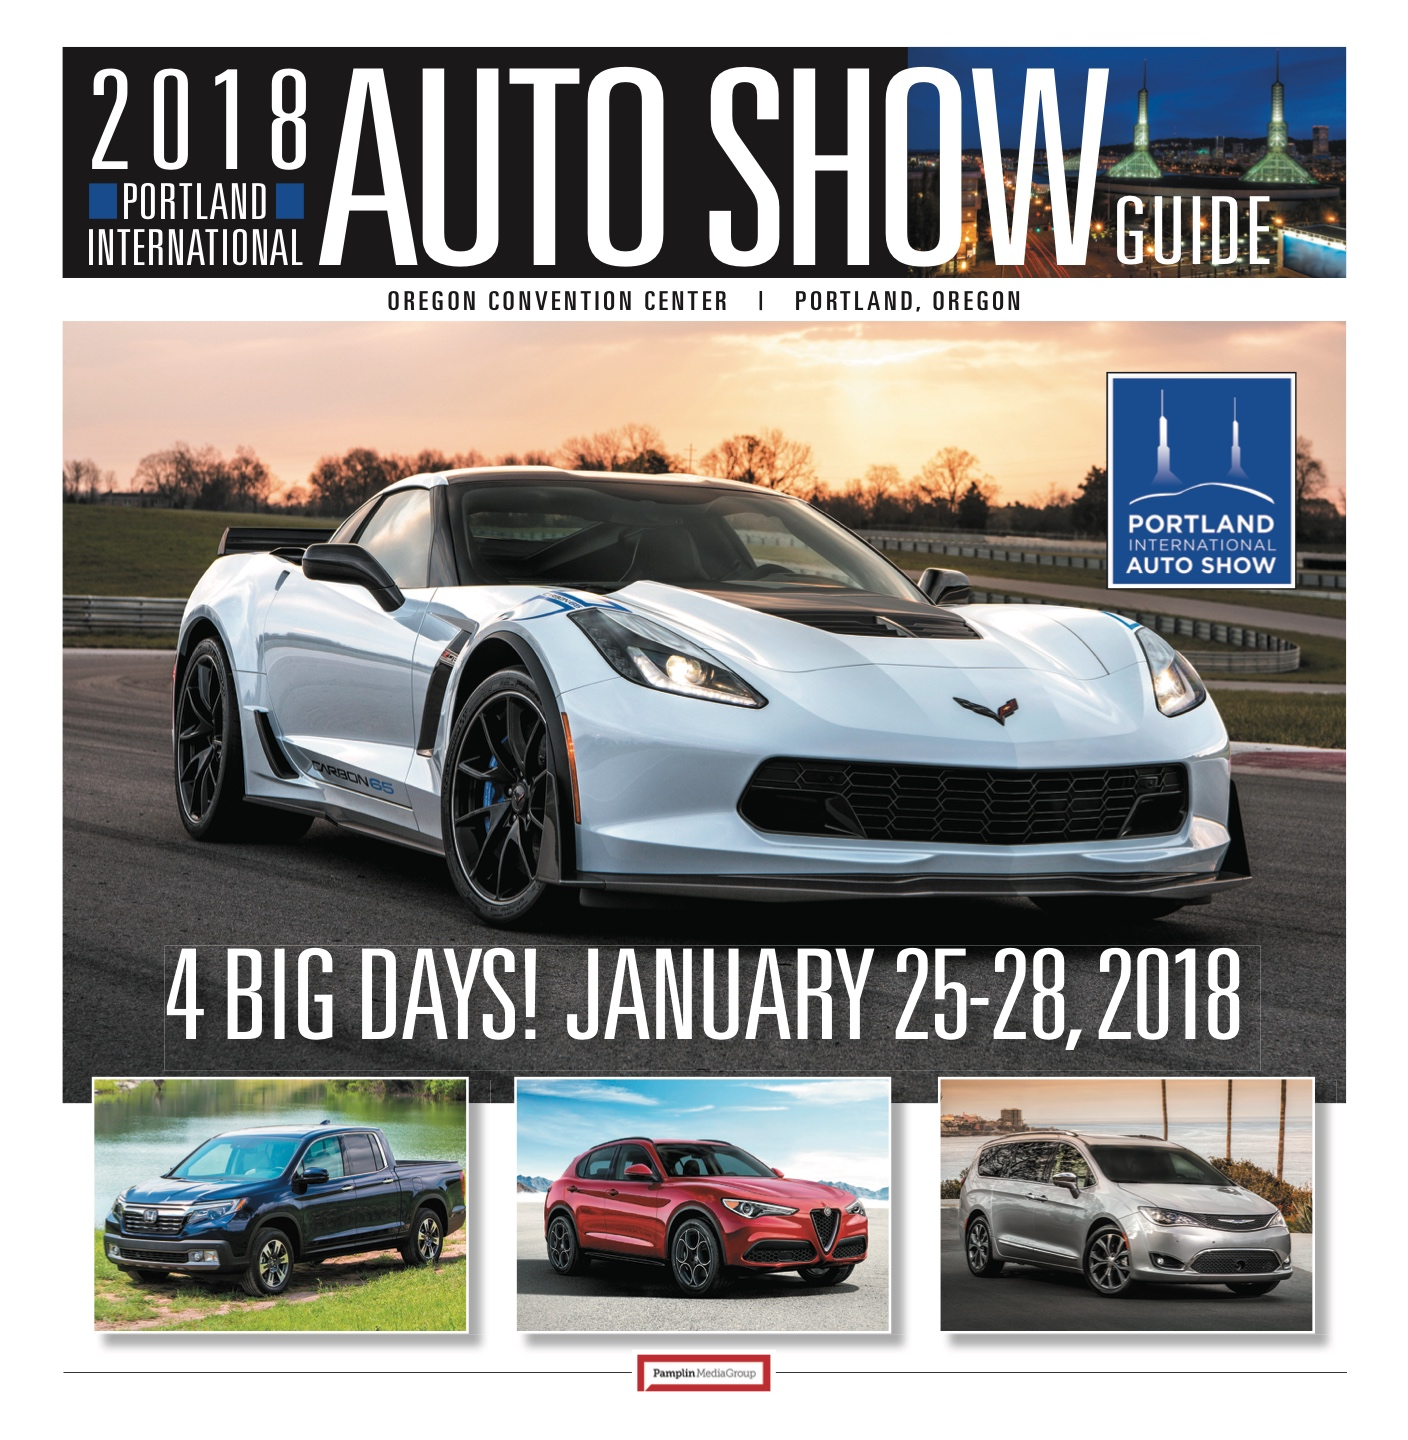 Portland International Auto Show Guide - Portland car show